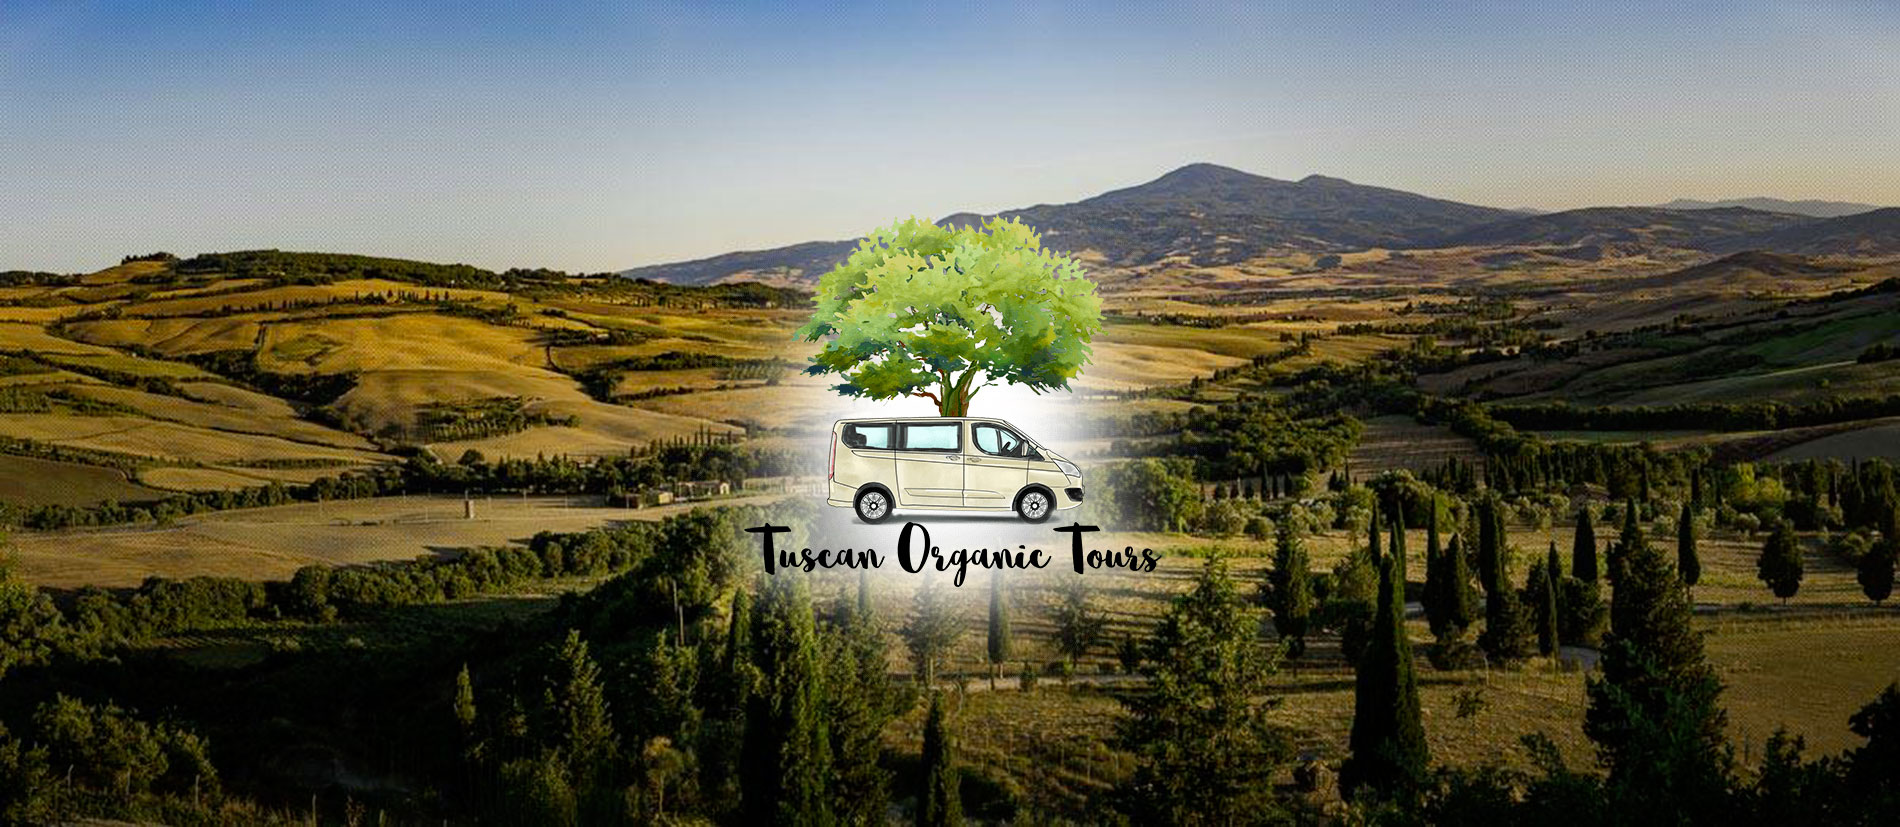 Tuscan Organic Tours - Tuscany private tours